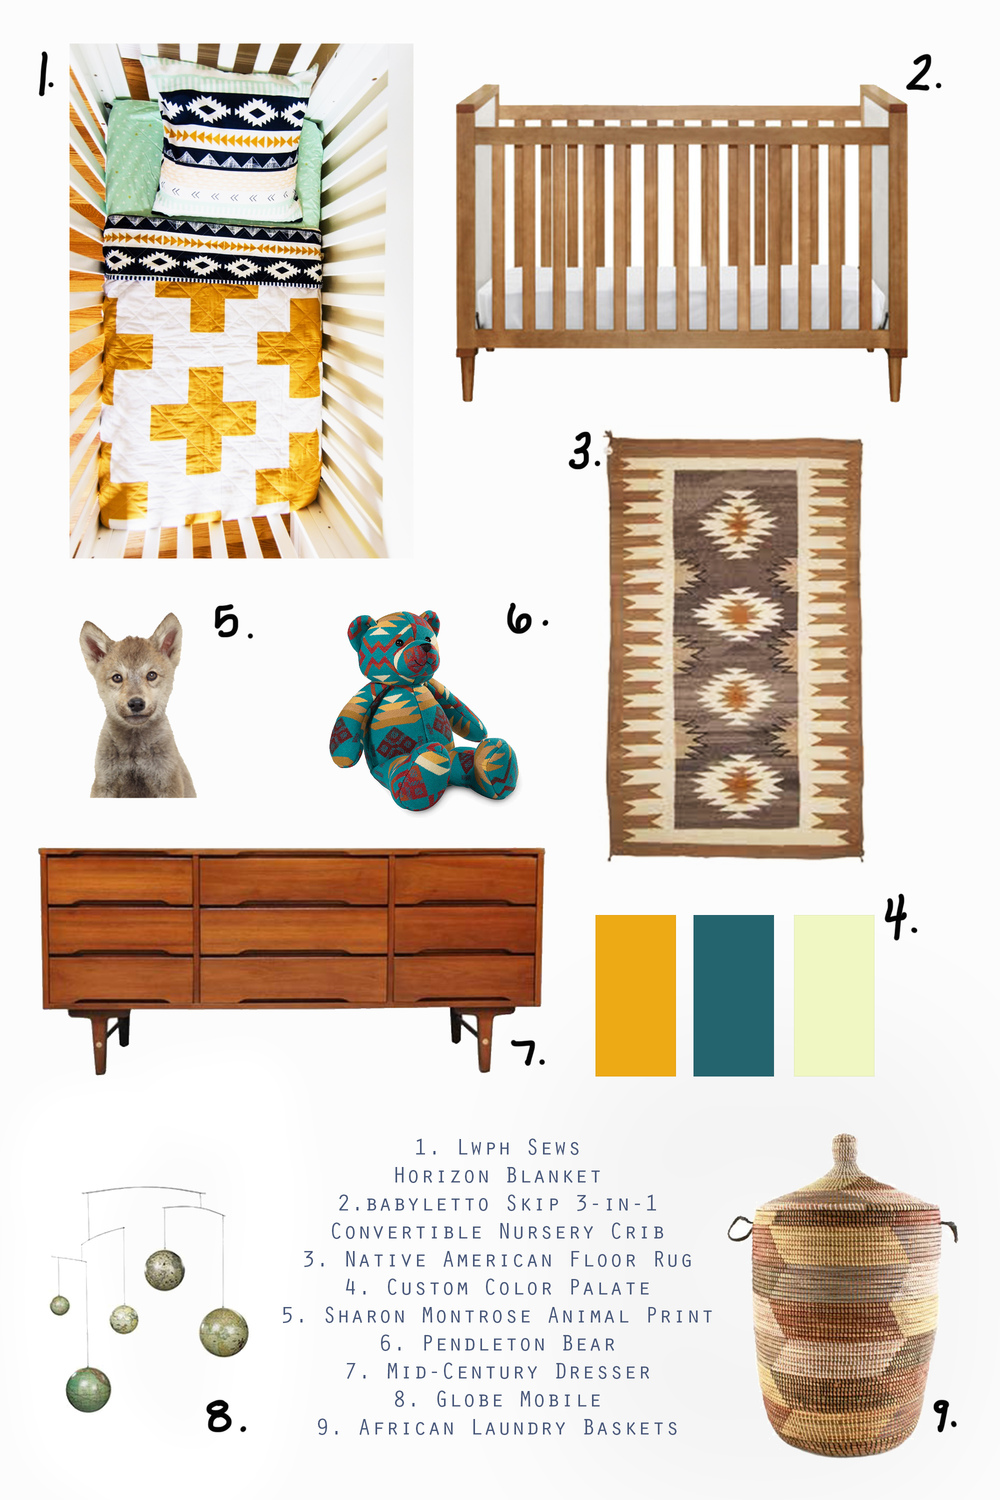 1. This quilt by LWPH Sews 2. This crib by Babyletto 3. A native.